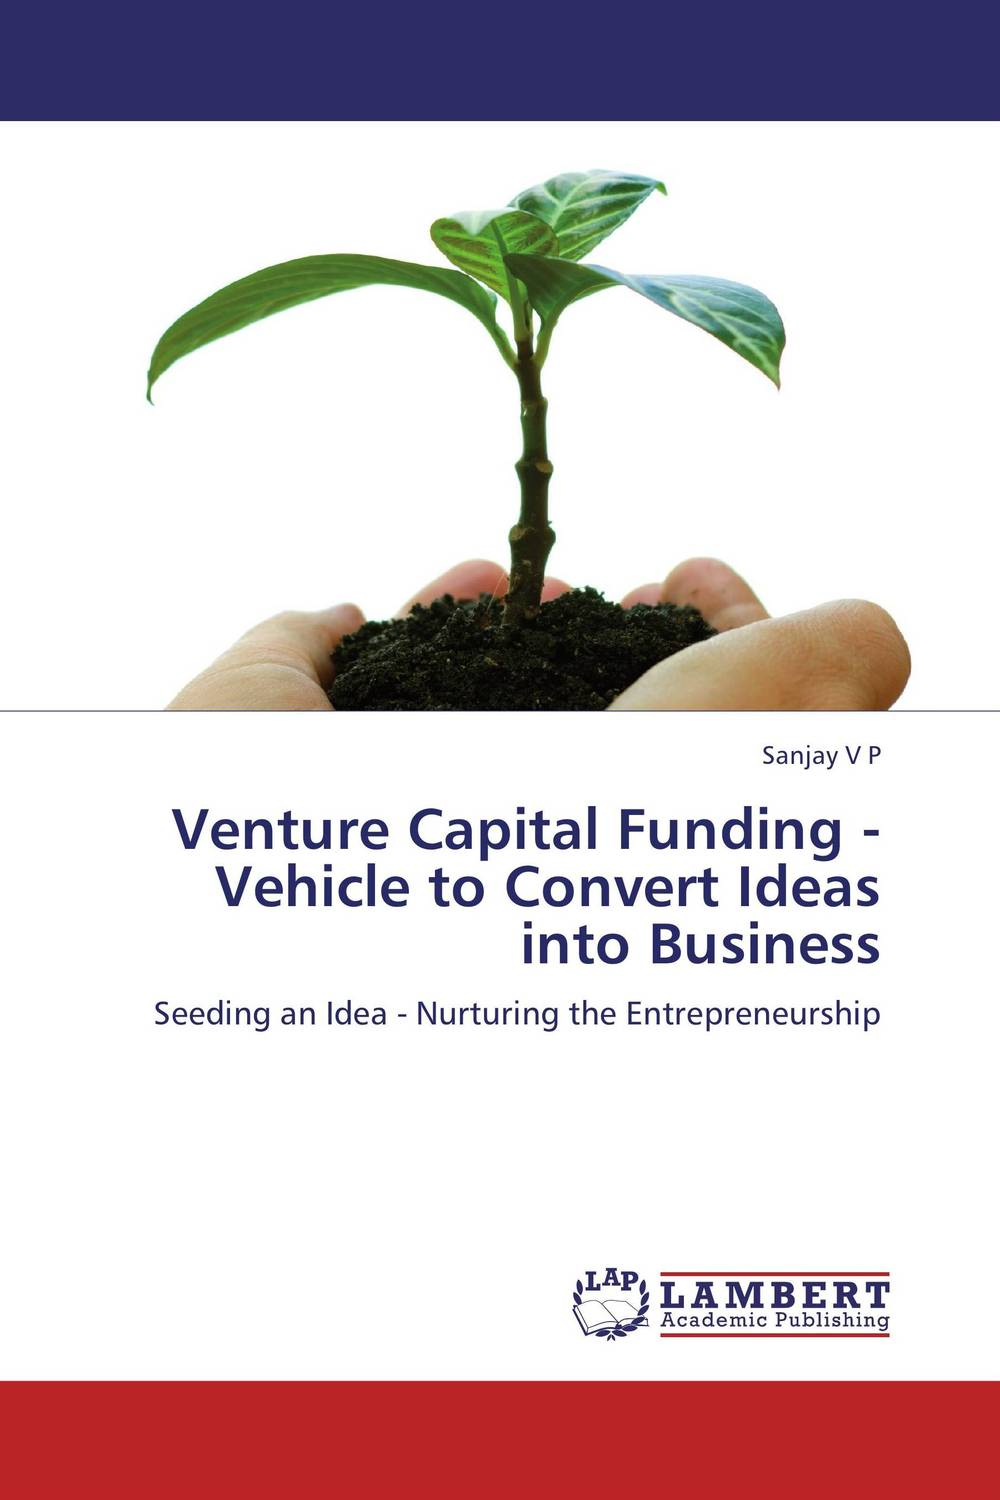 Venture Capital Funding - Vehicle to Convert Ideas into Business venture to the interior